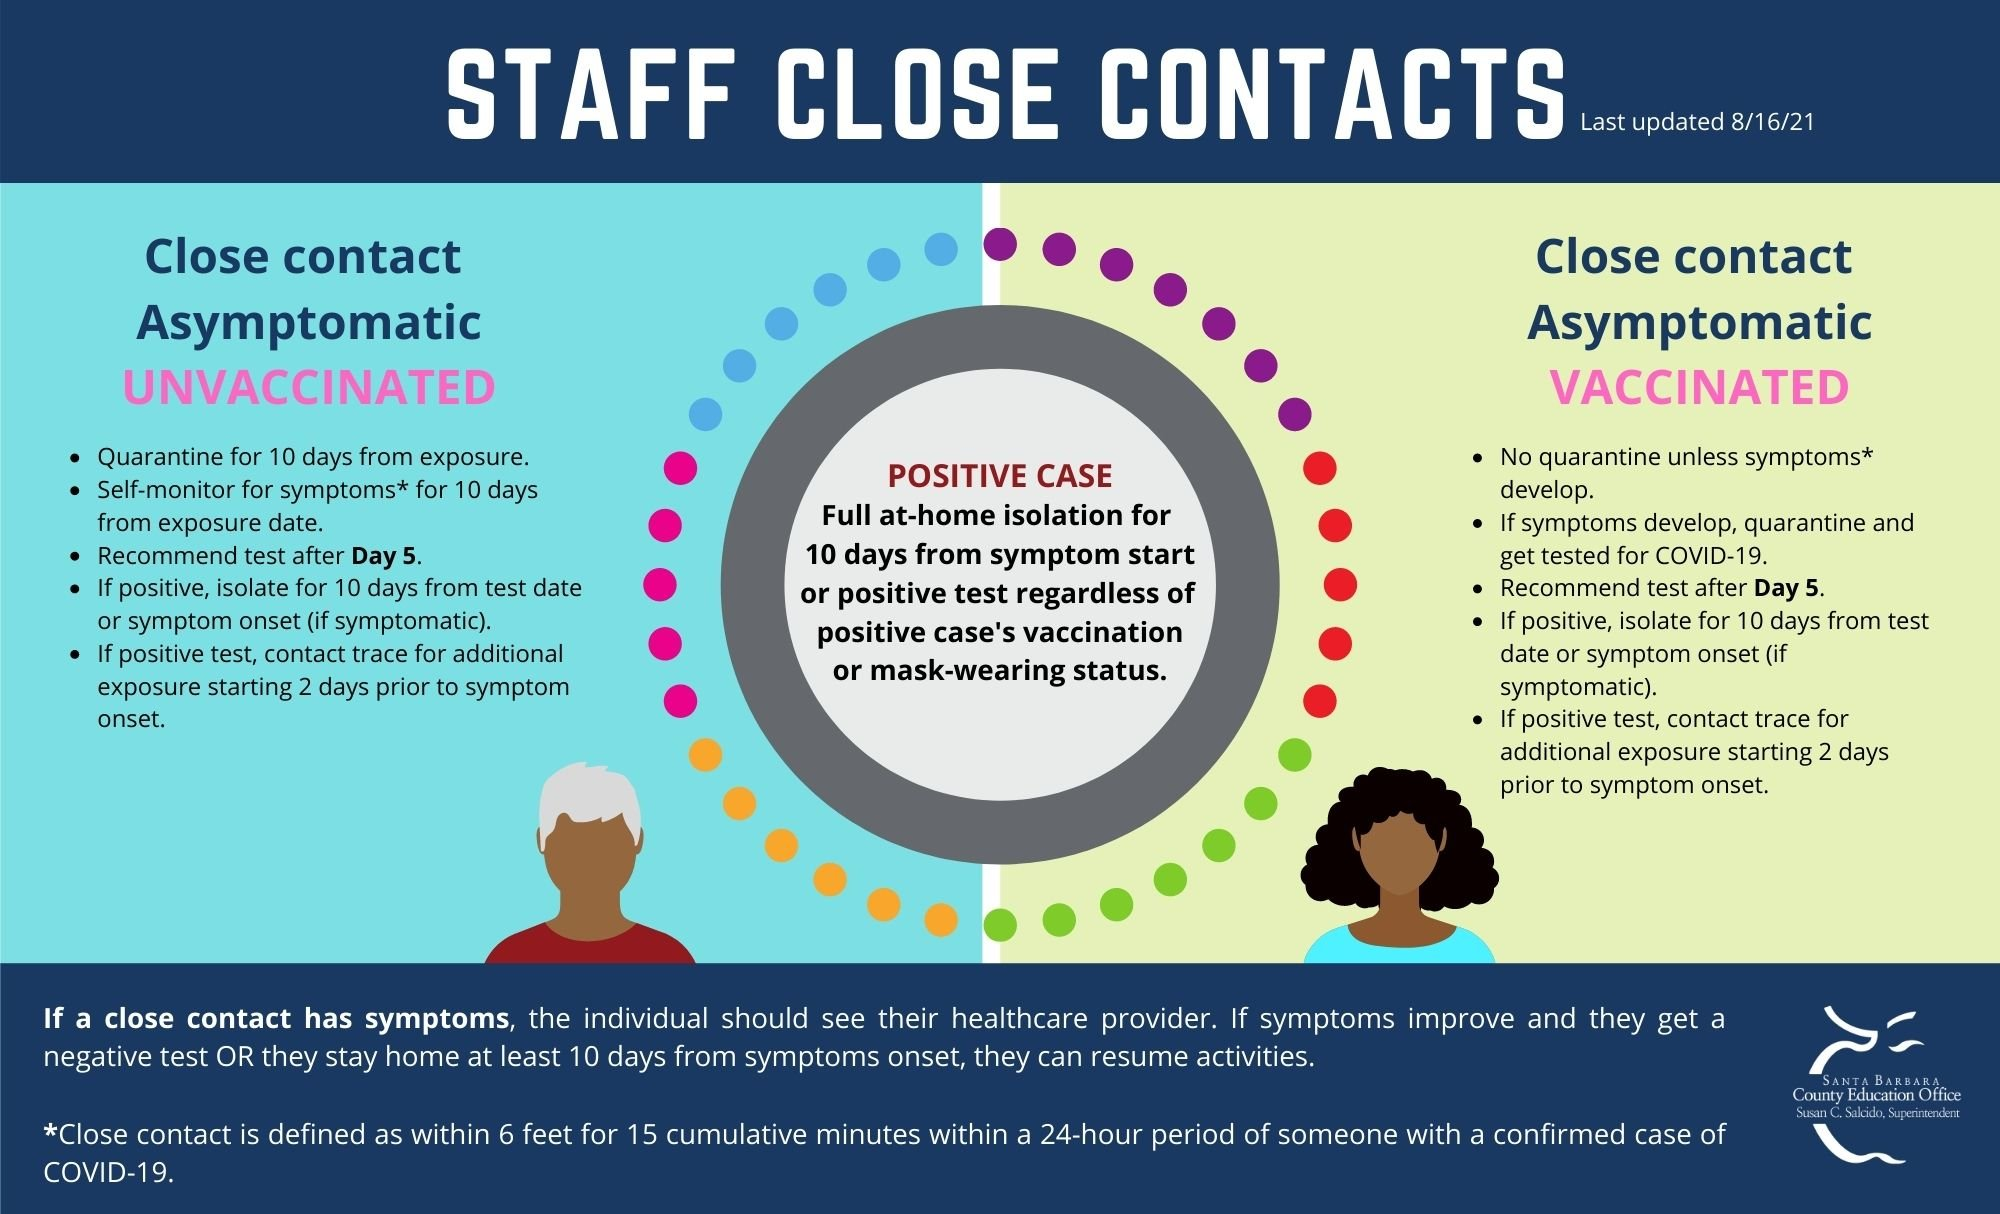 COVID-19 infographic of steps to take when Staff has close contact in school setting.